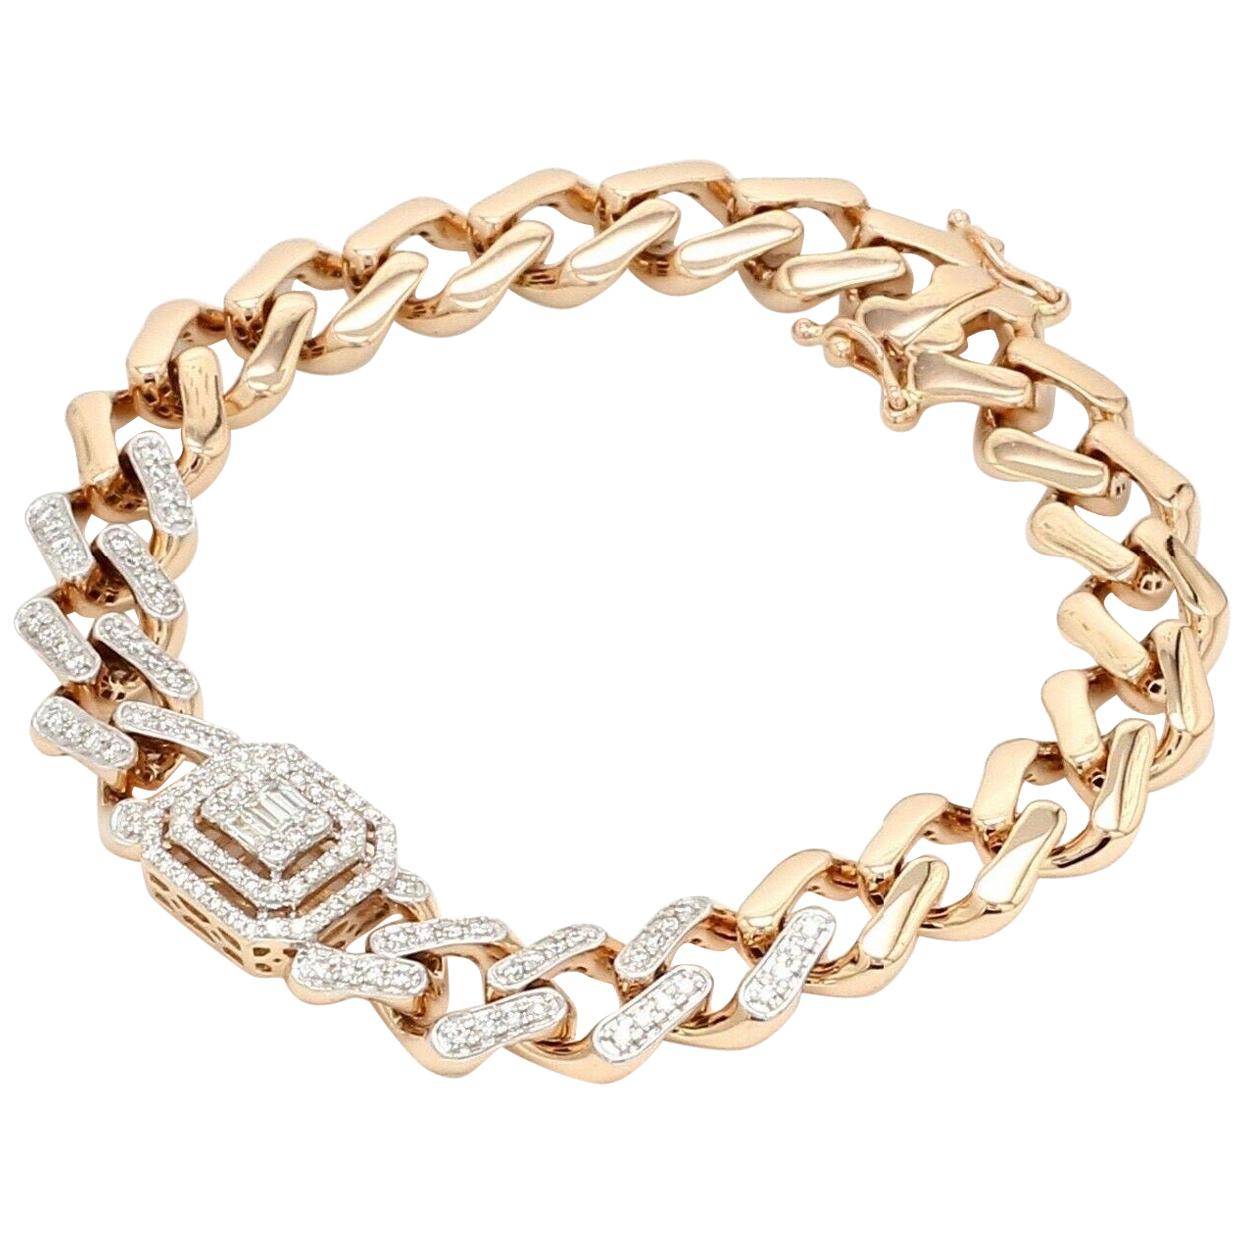 Chain Link Diamond 18 Karat Rose Gold Bracelet